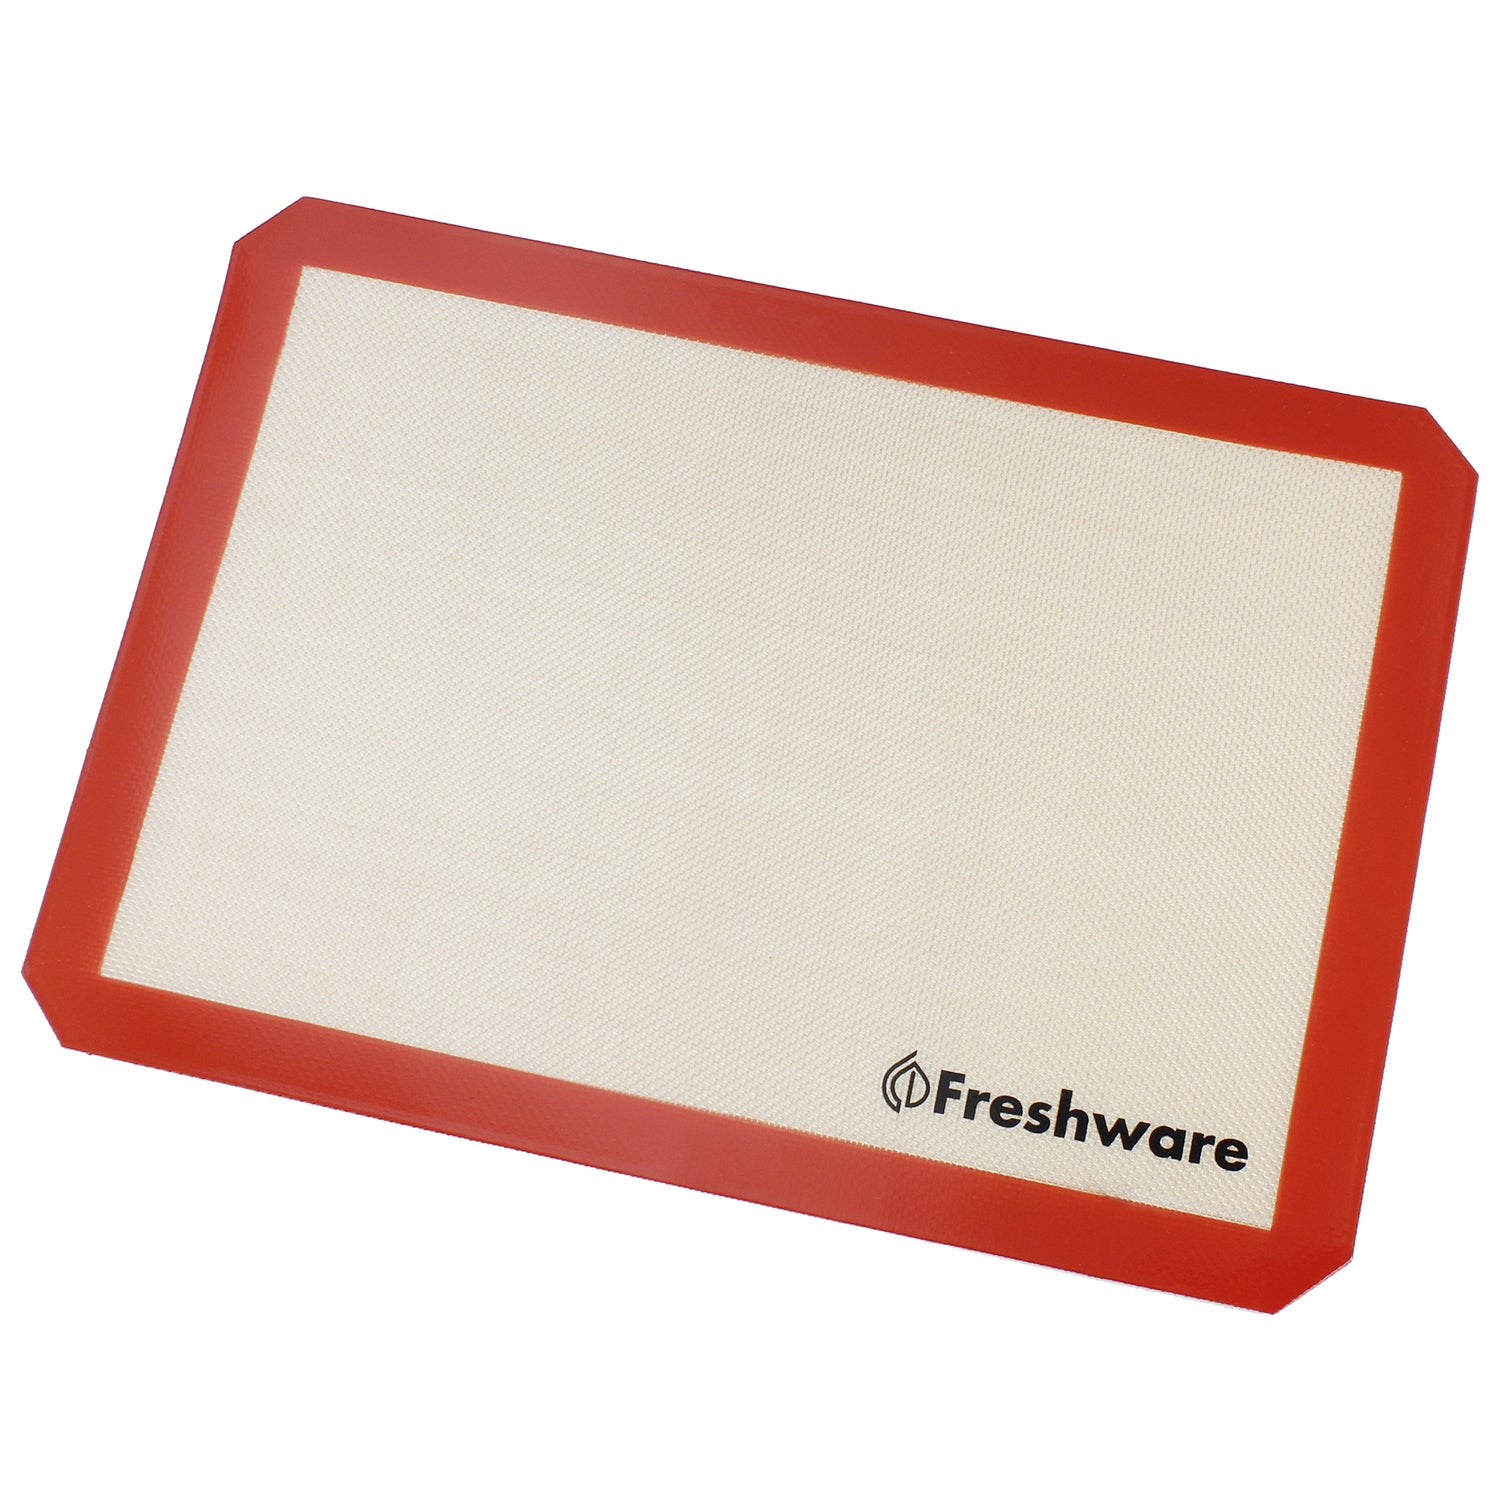 Freshware Silicone Half-size Non-Stick Baking Mat (Red, B...